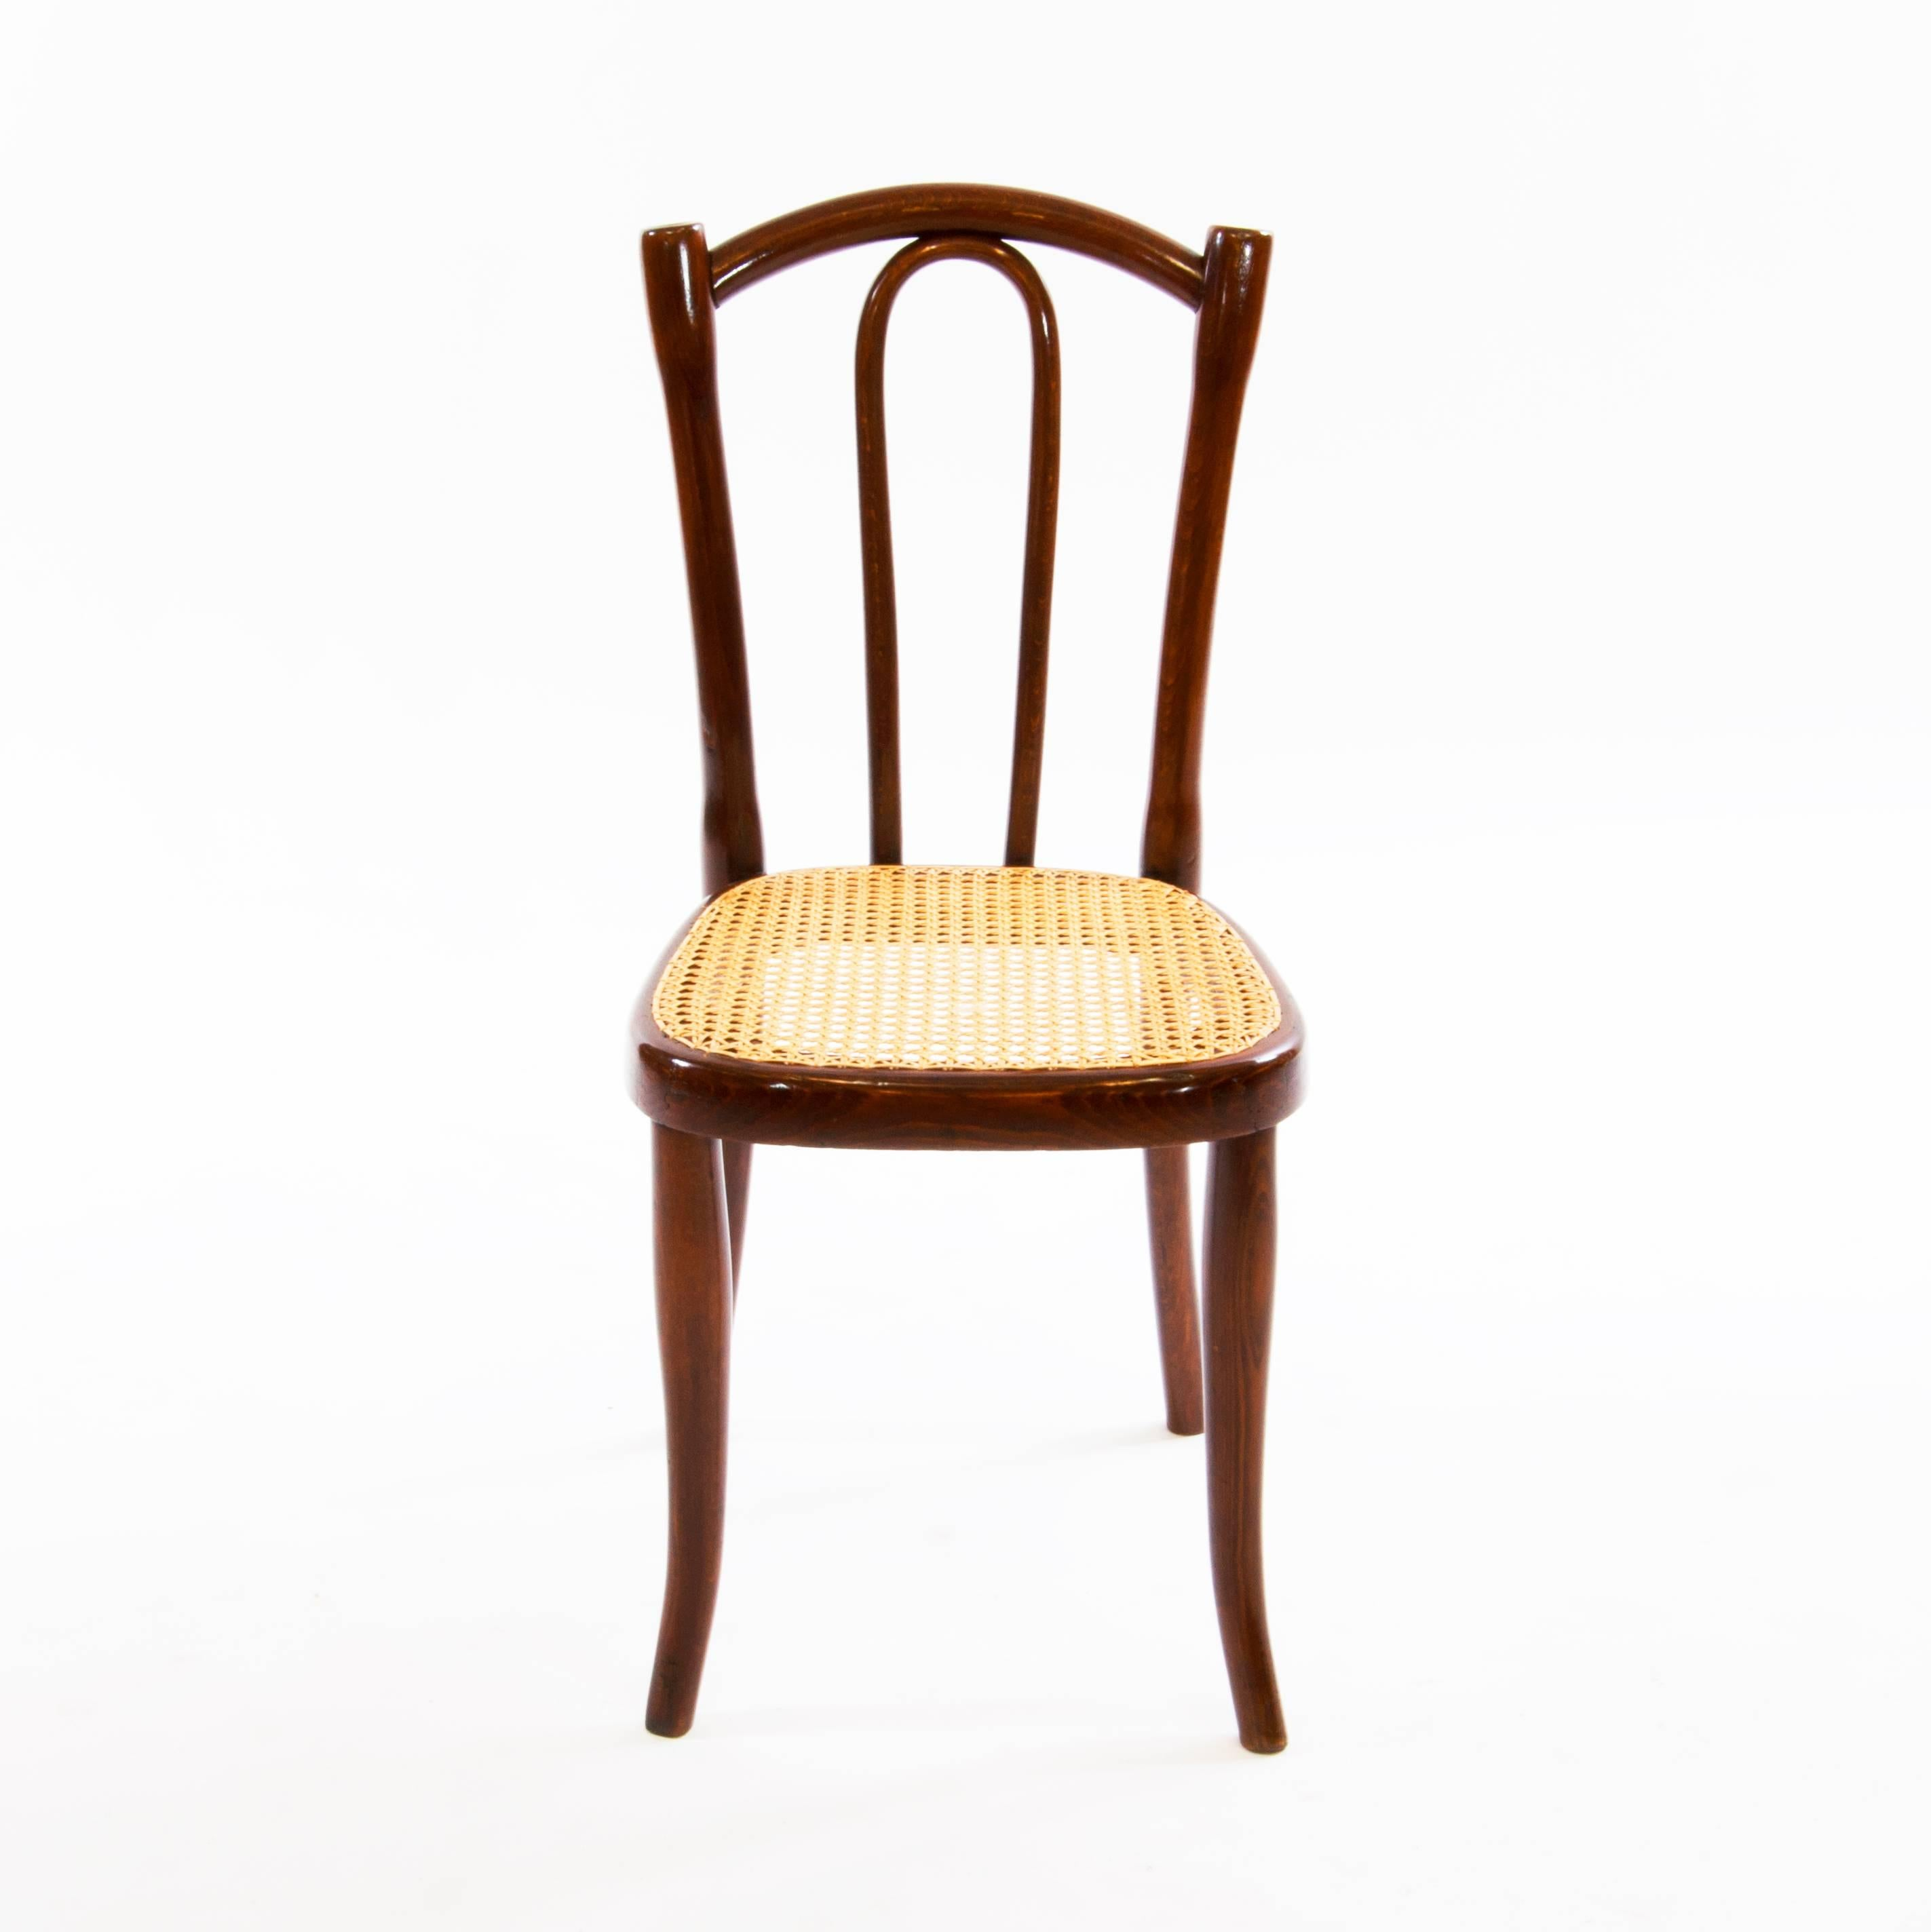 Very Rare And Antique Thonet Children Bentwood Chairs No. 2, Which Were  Produced Between